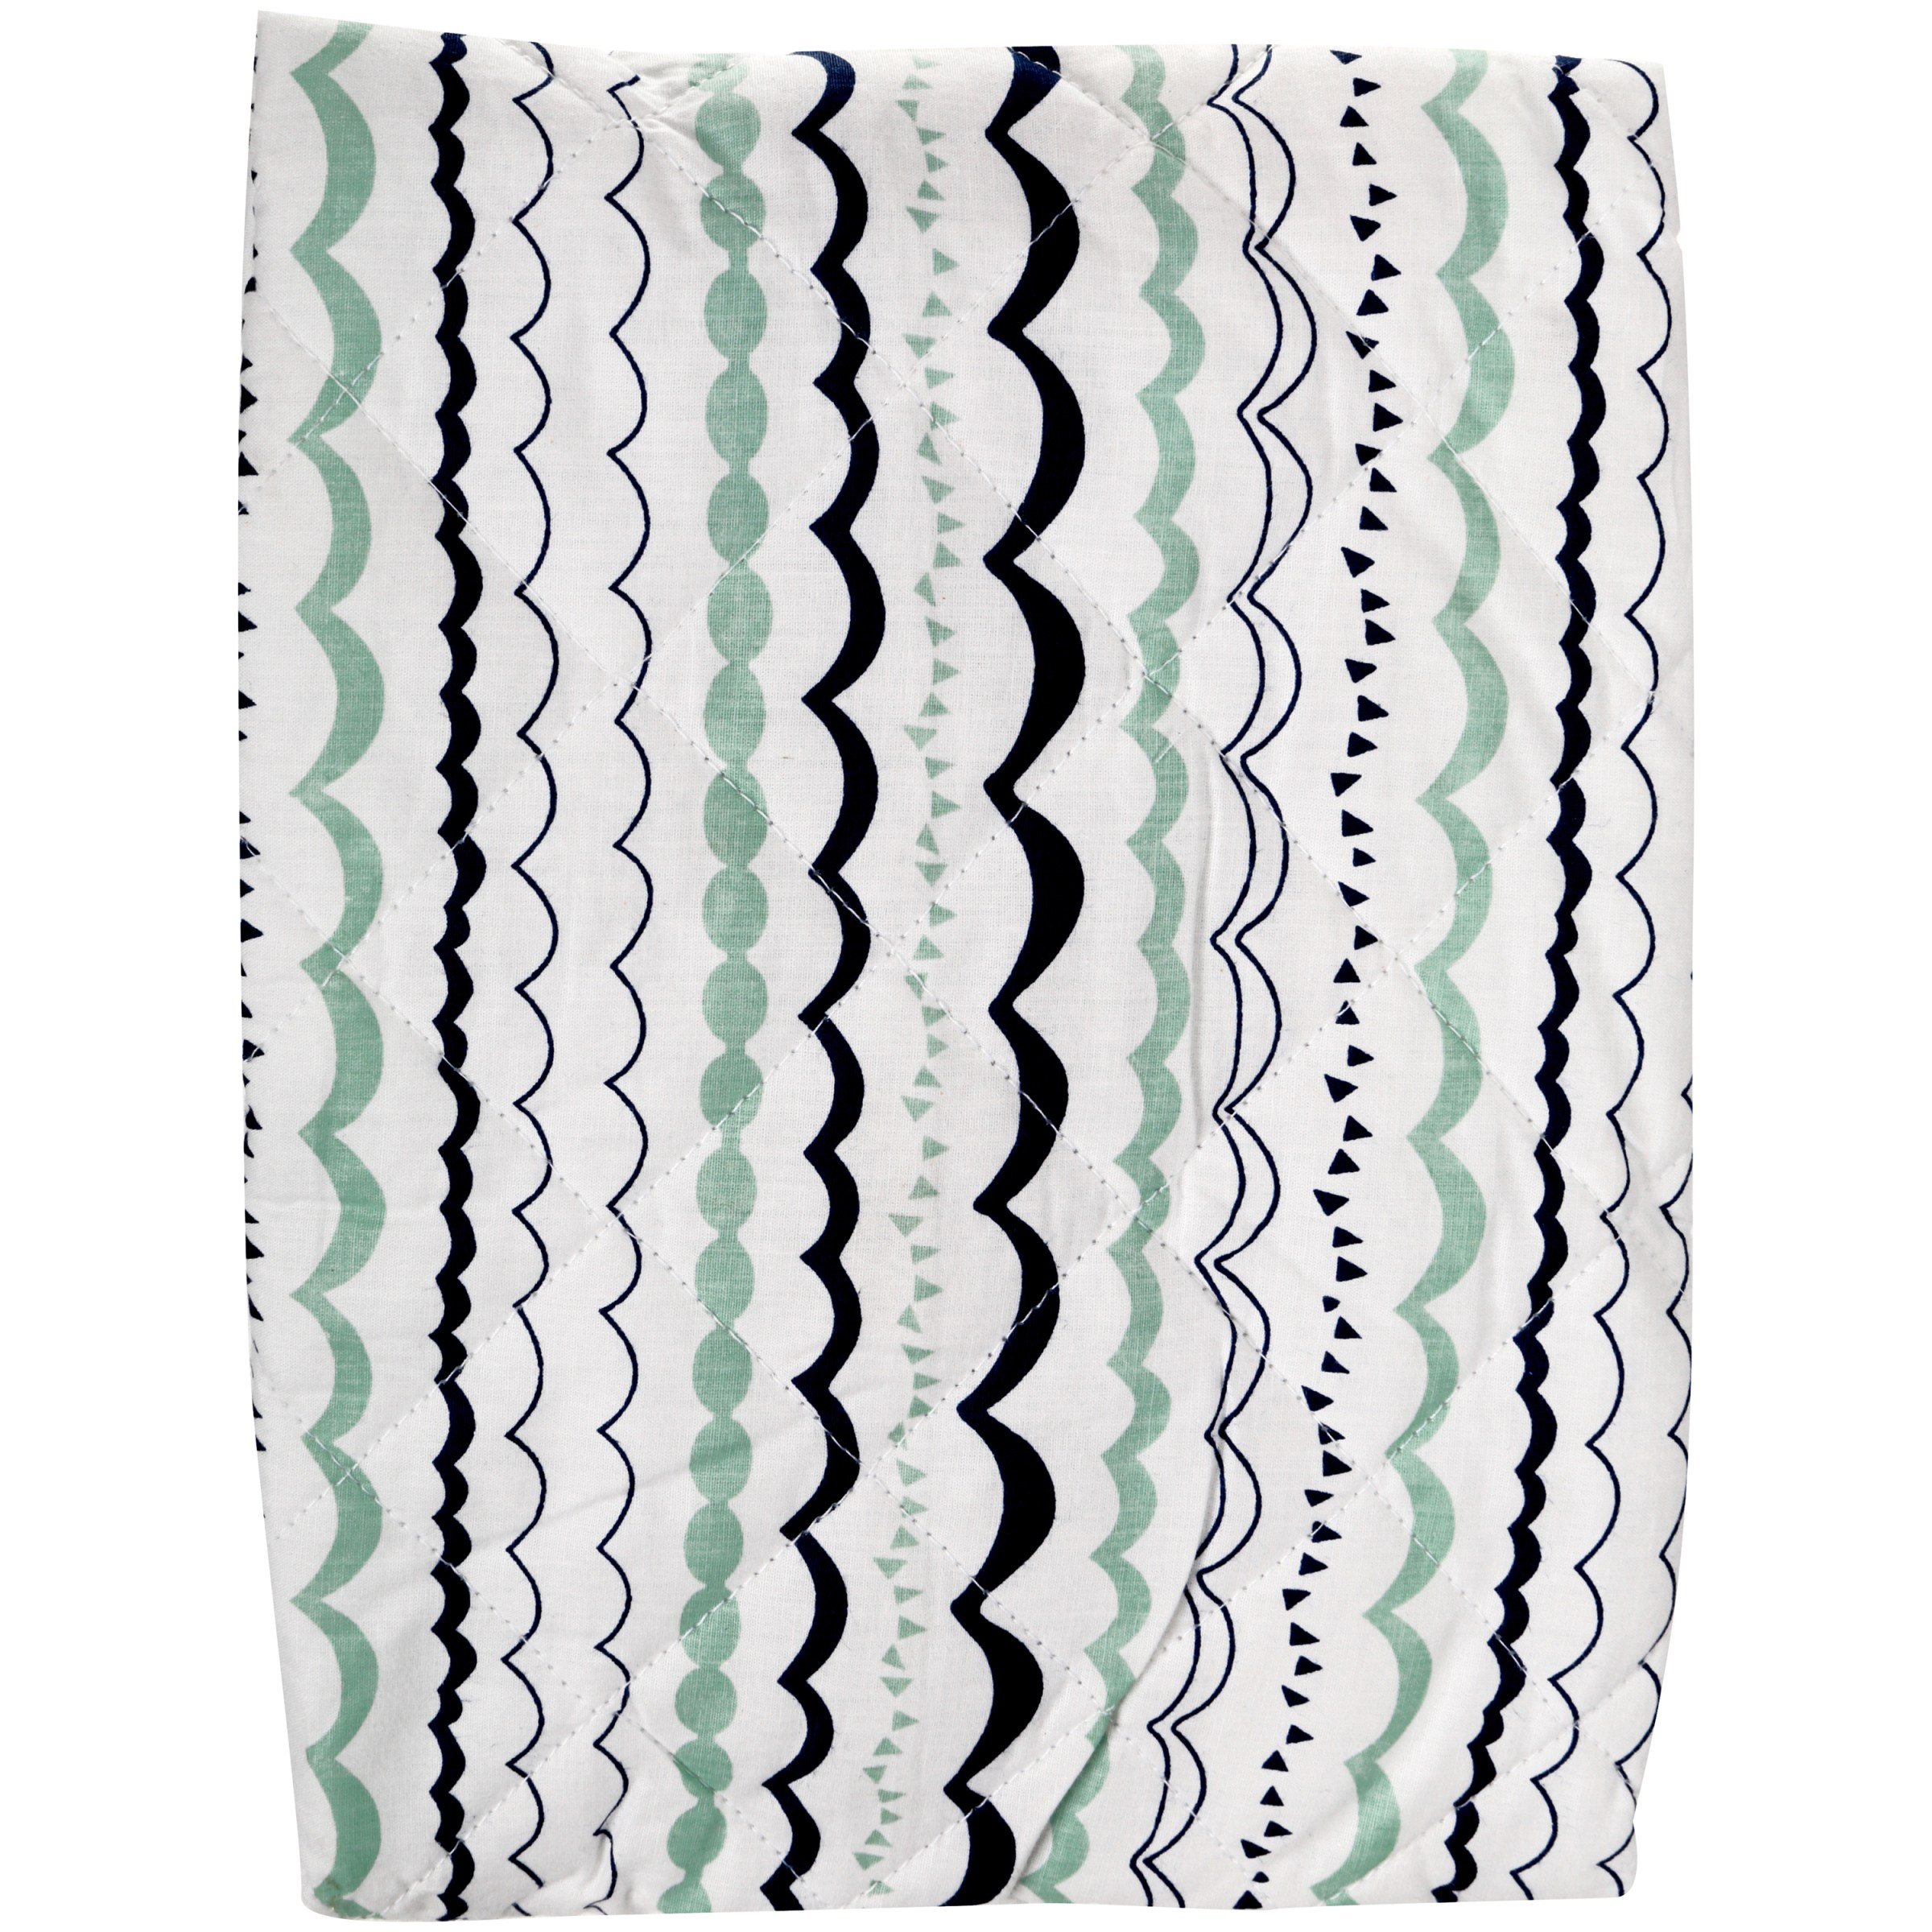 Bacati Noah Tribal Quilted Changing Pad Cover